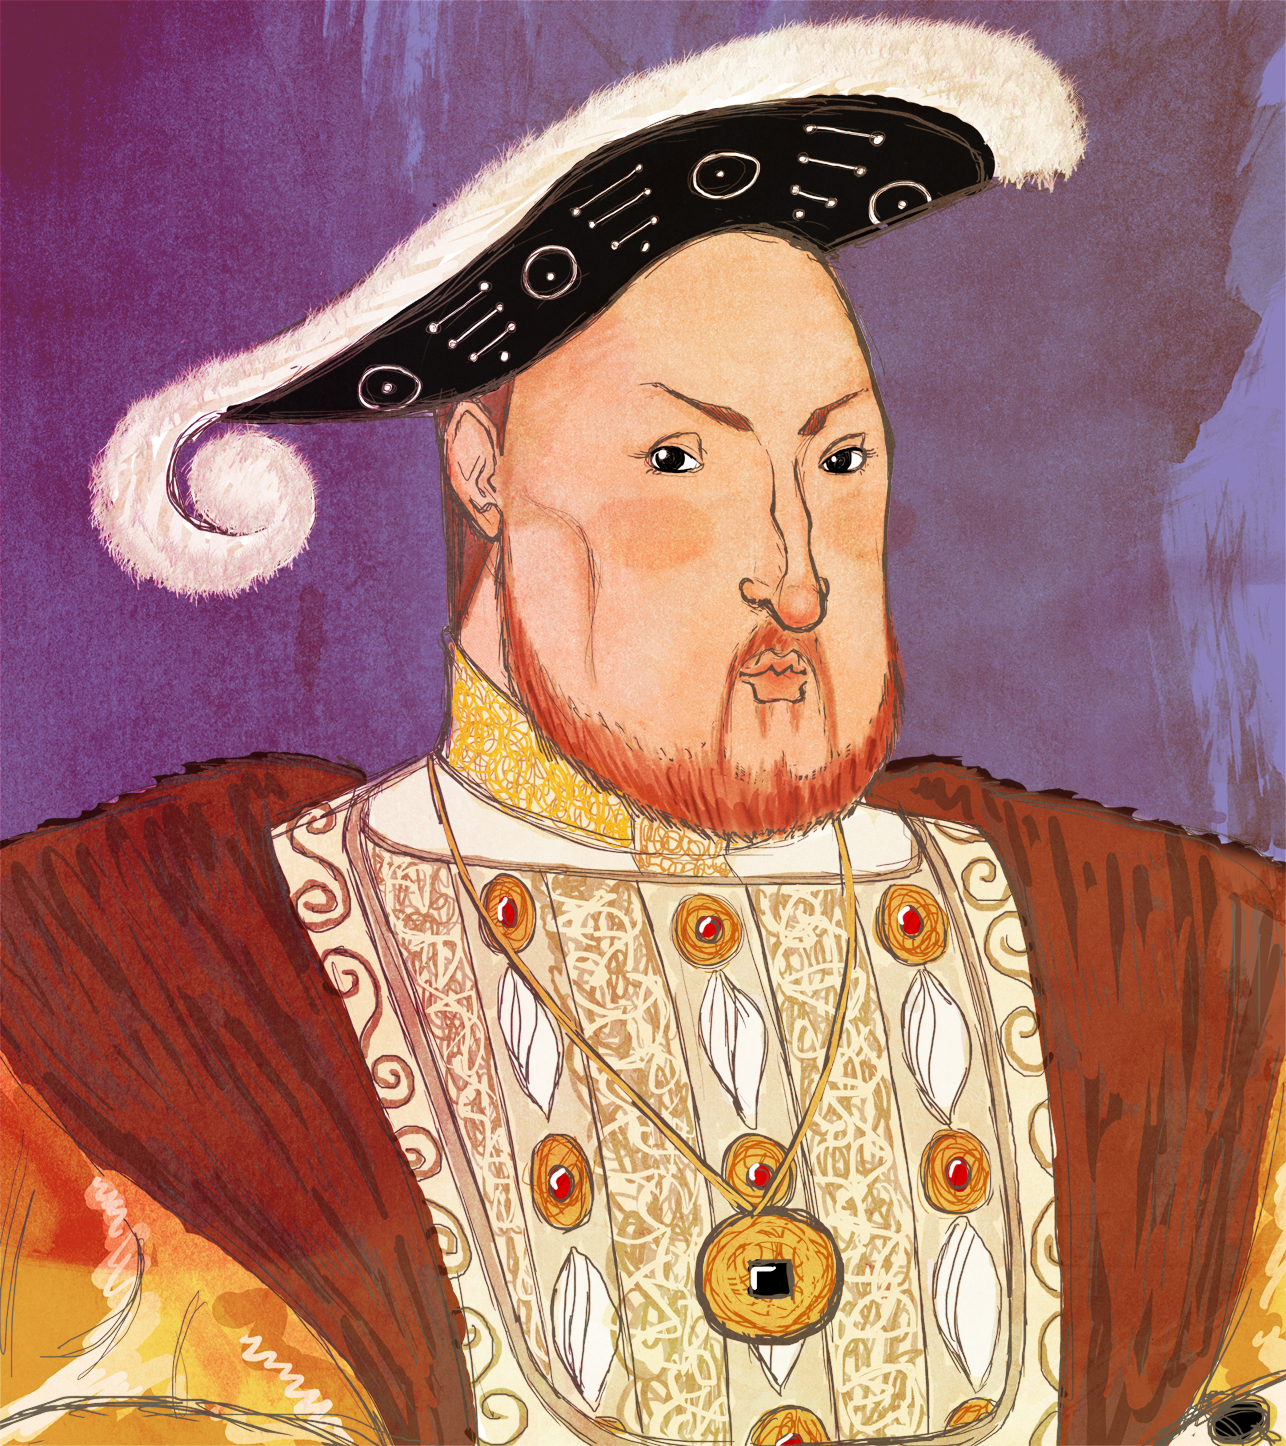 Caricature of Henry the 8th